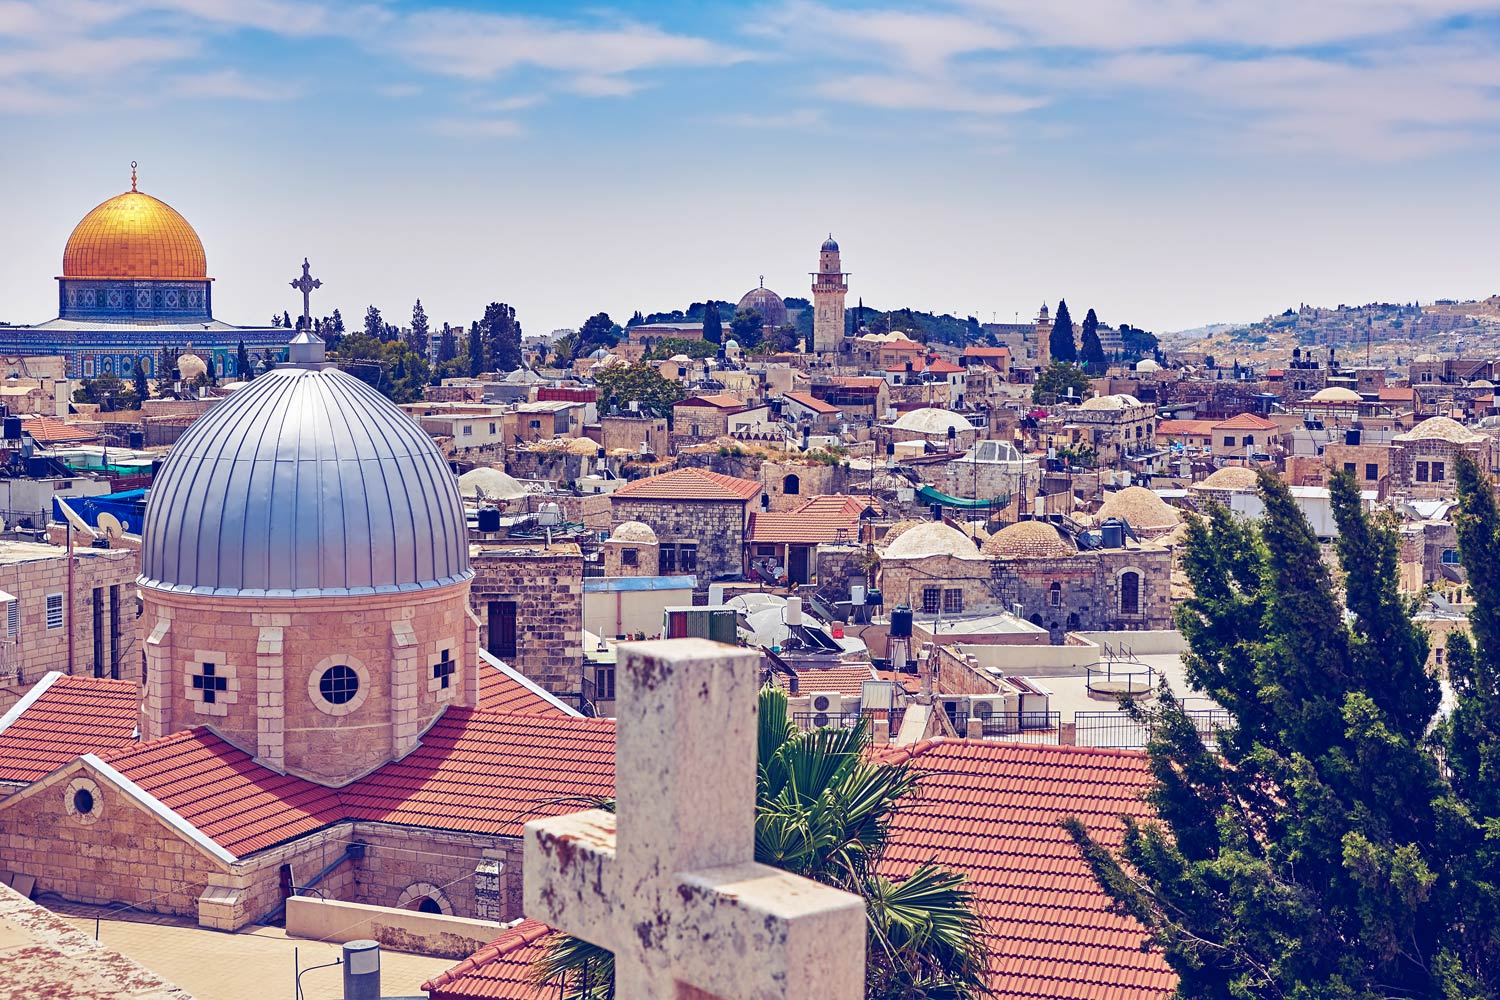 Jerusalem is claimed as a holy site by Jews, Christians and Muslims.